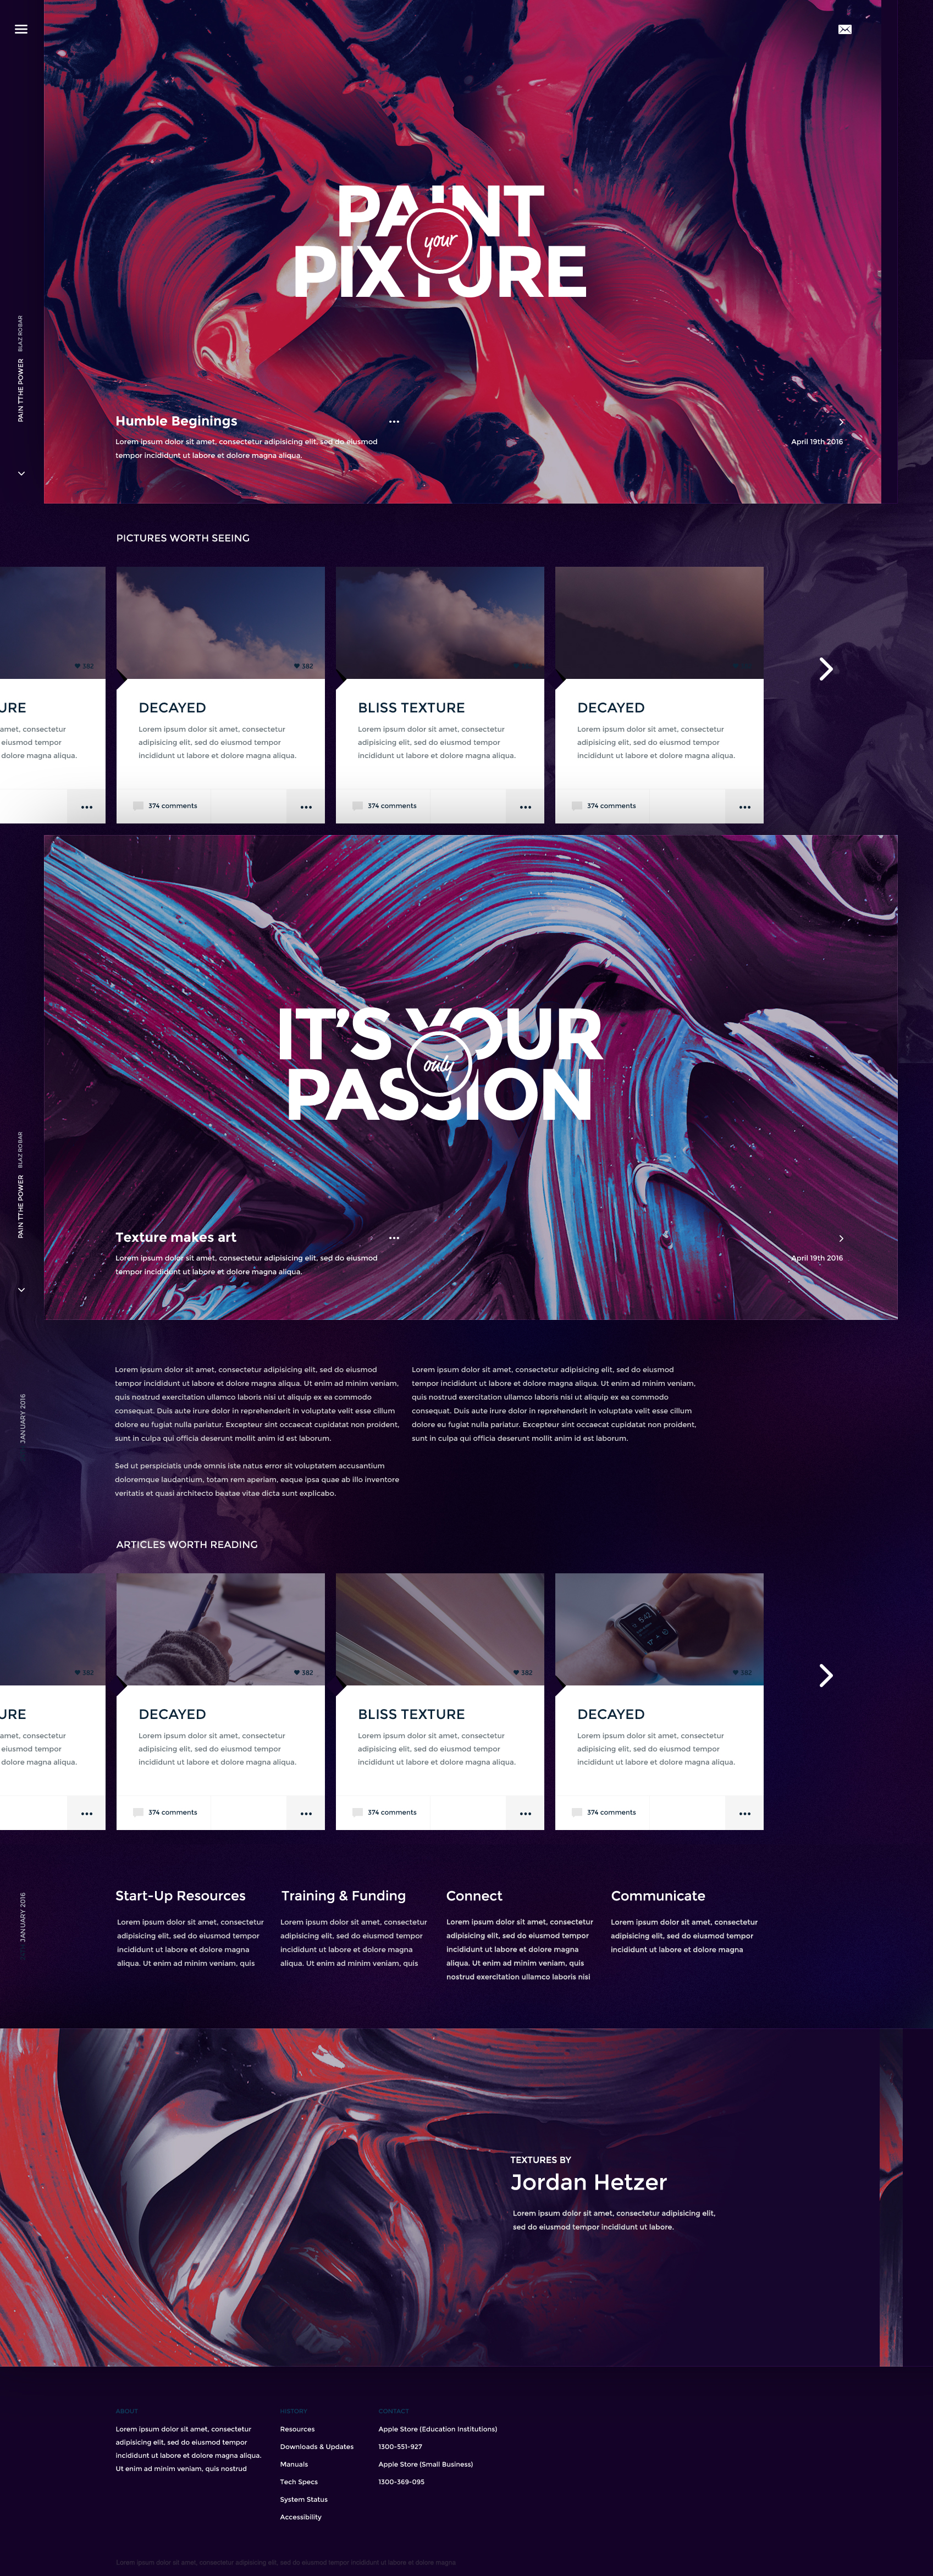 Pixture Free Canvas Photoshop Website Template PSD